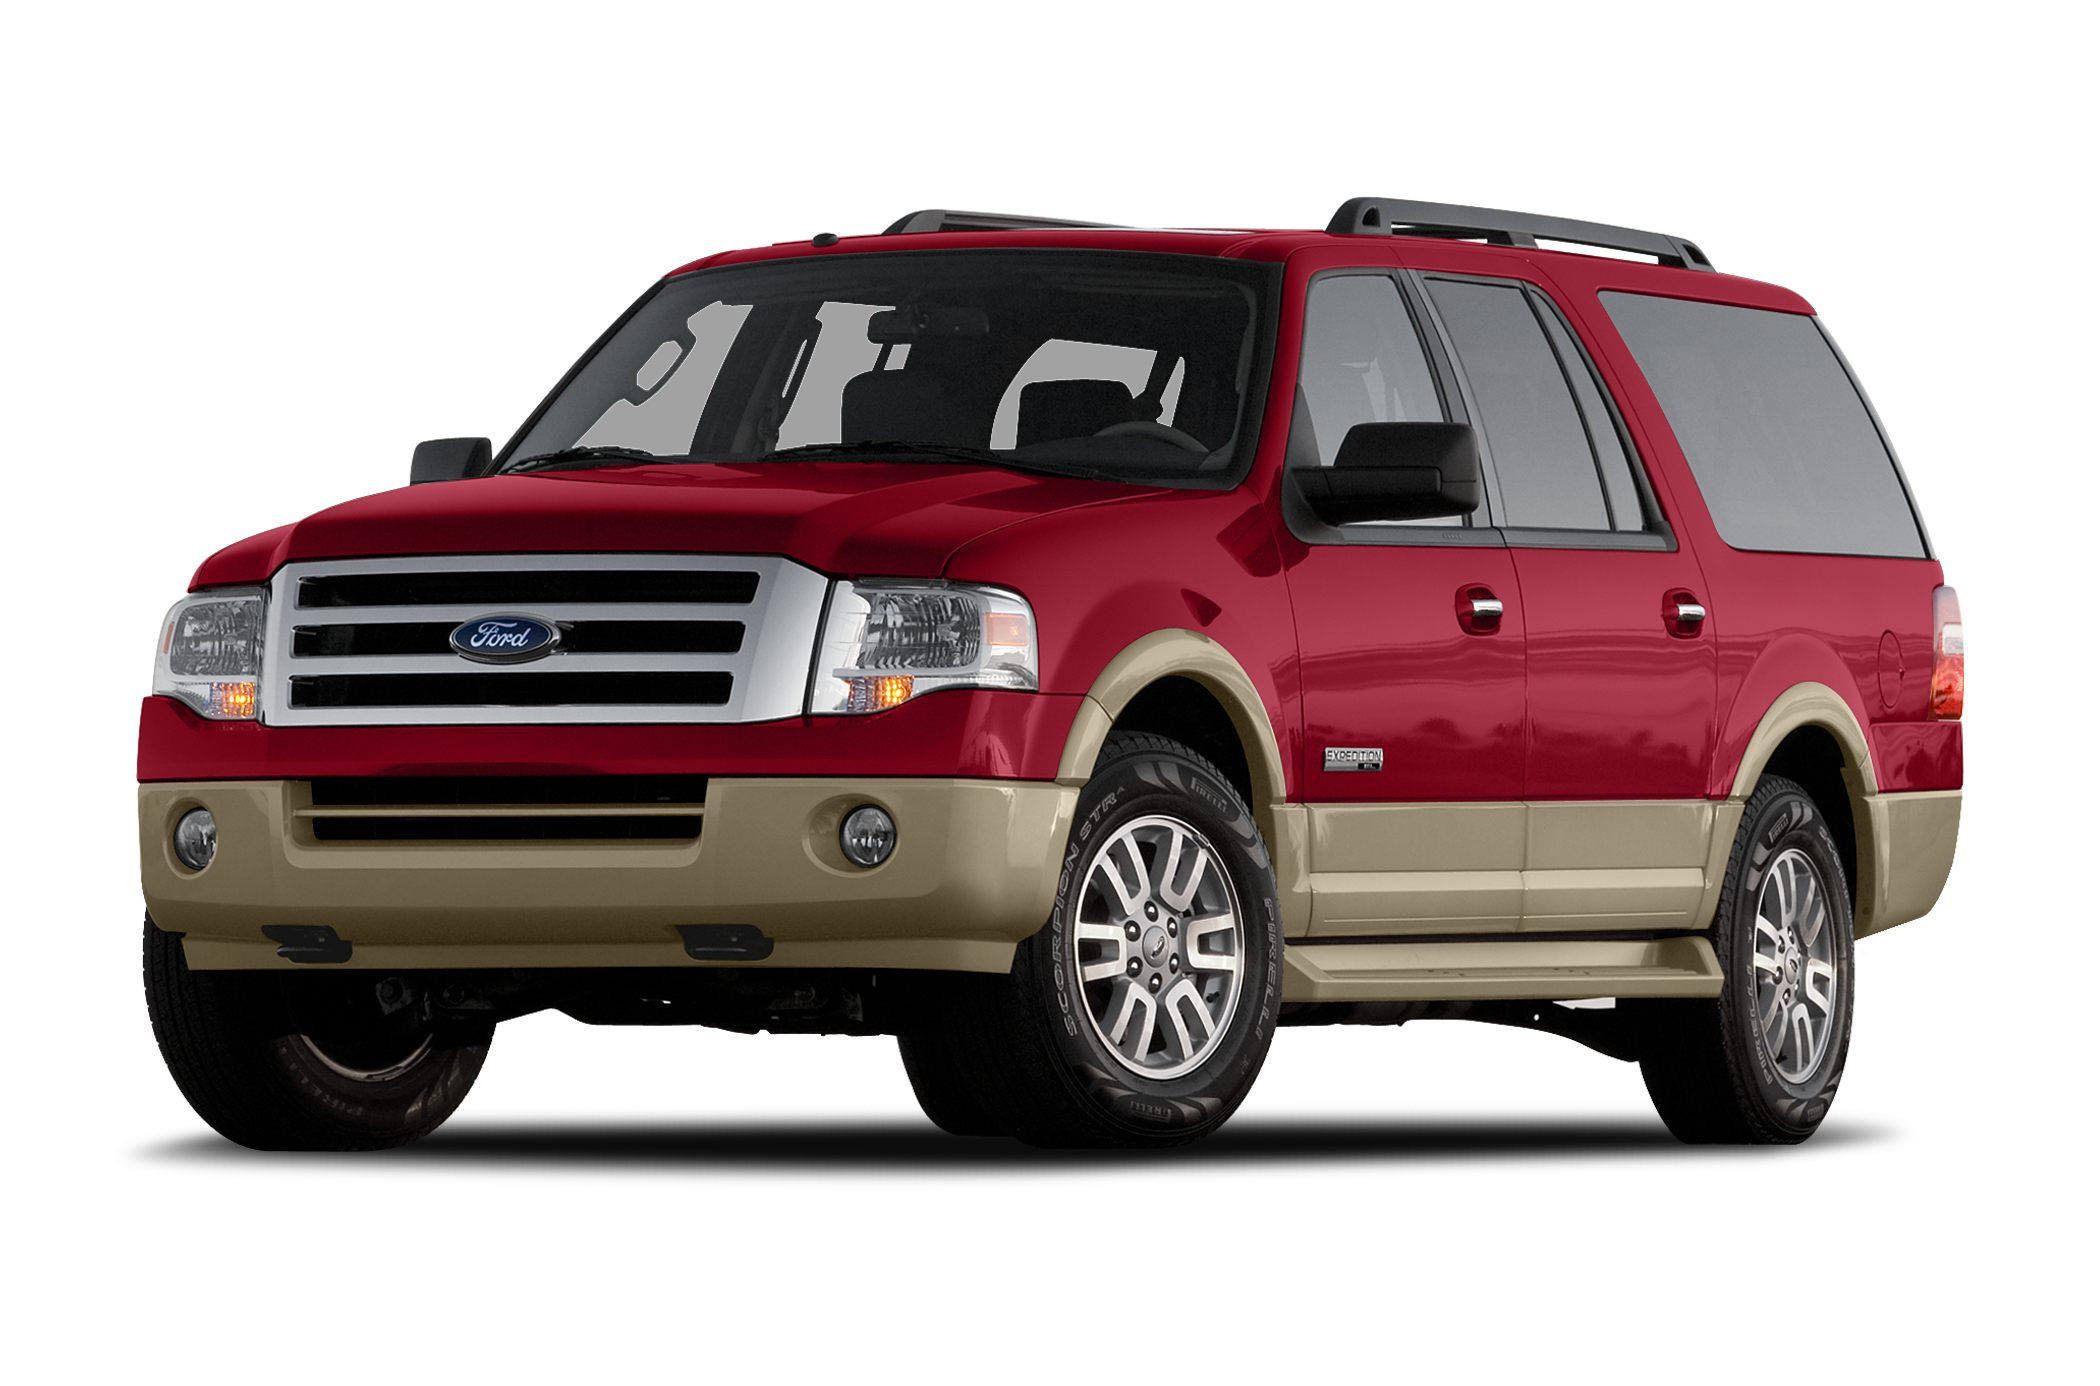 expedition auction item suv xlt fire ford department marilla international auctions